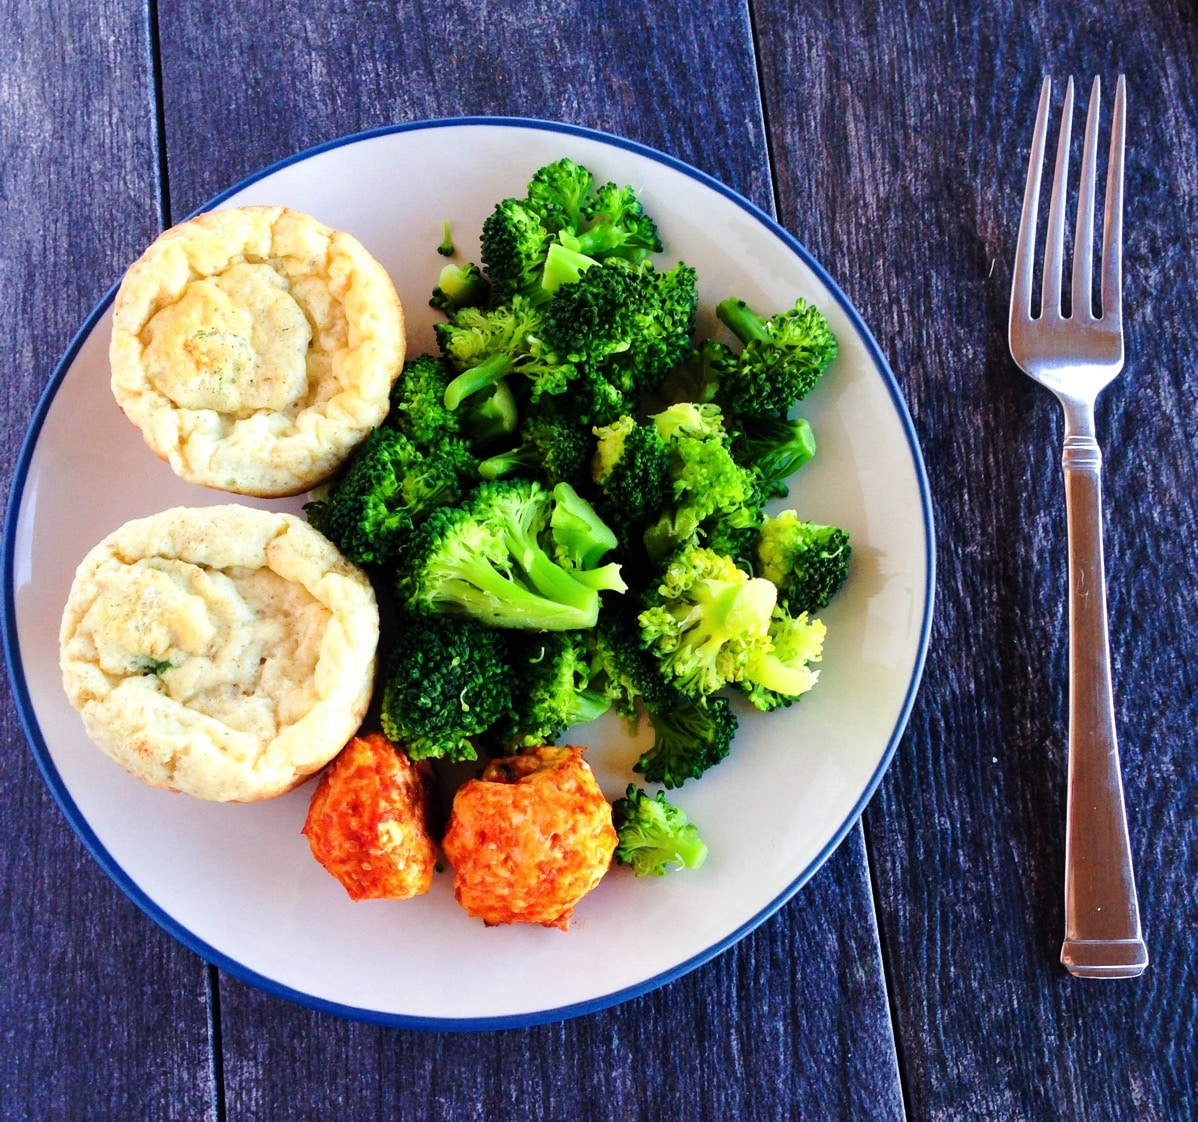 160209 muffins meatballs and broccoli